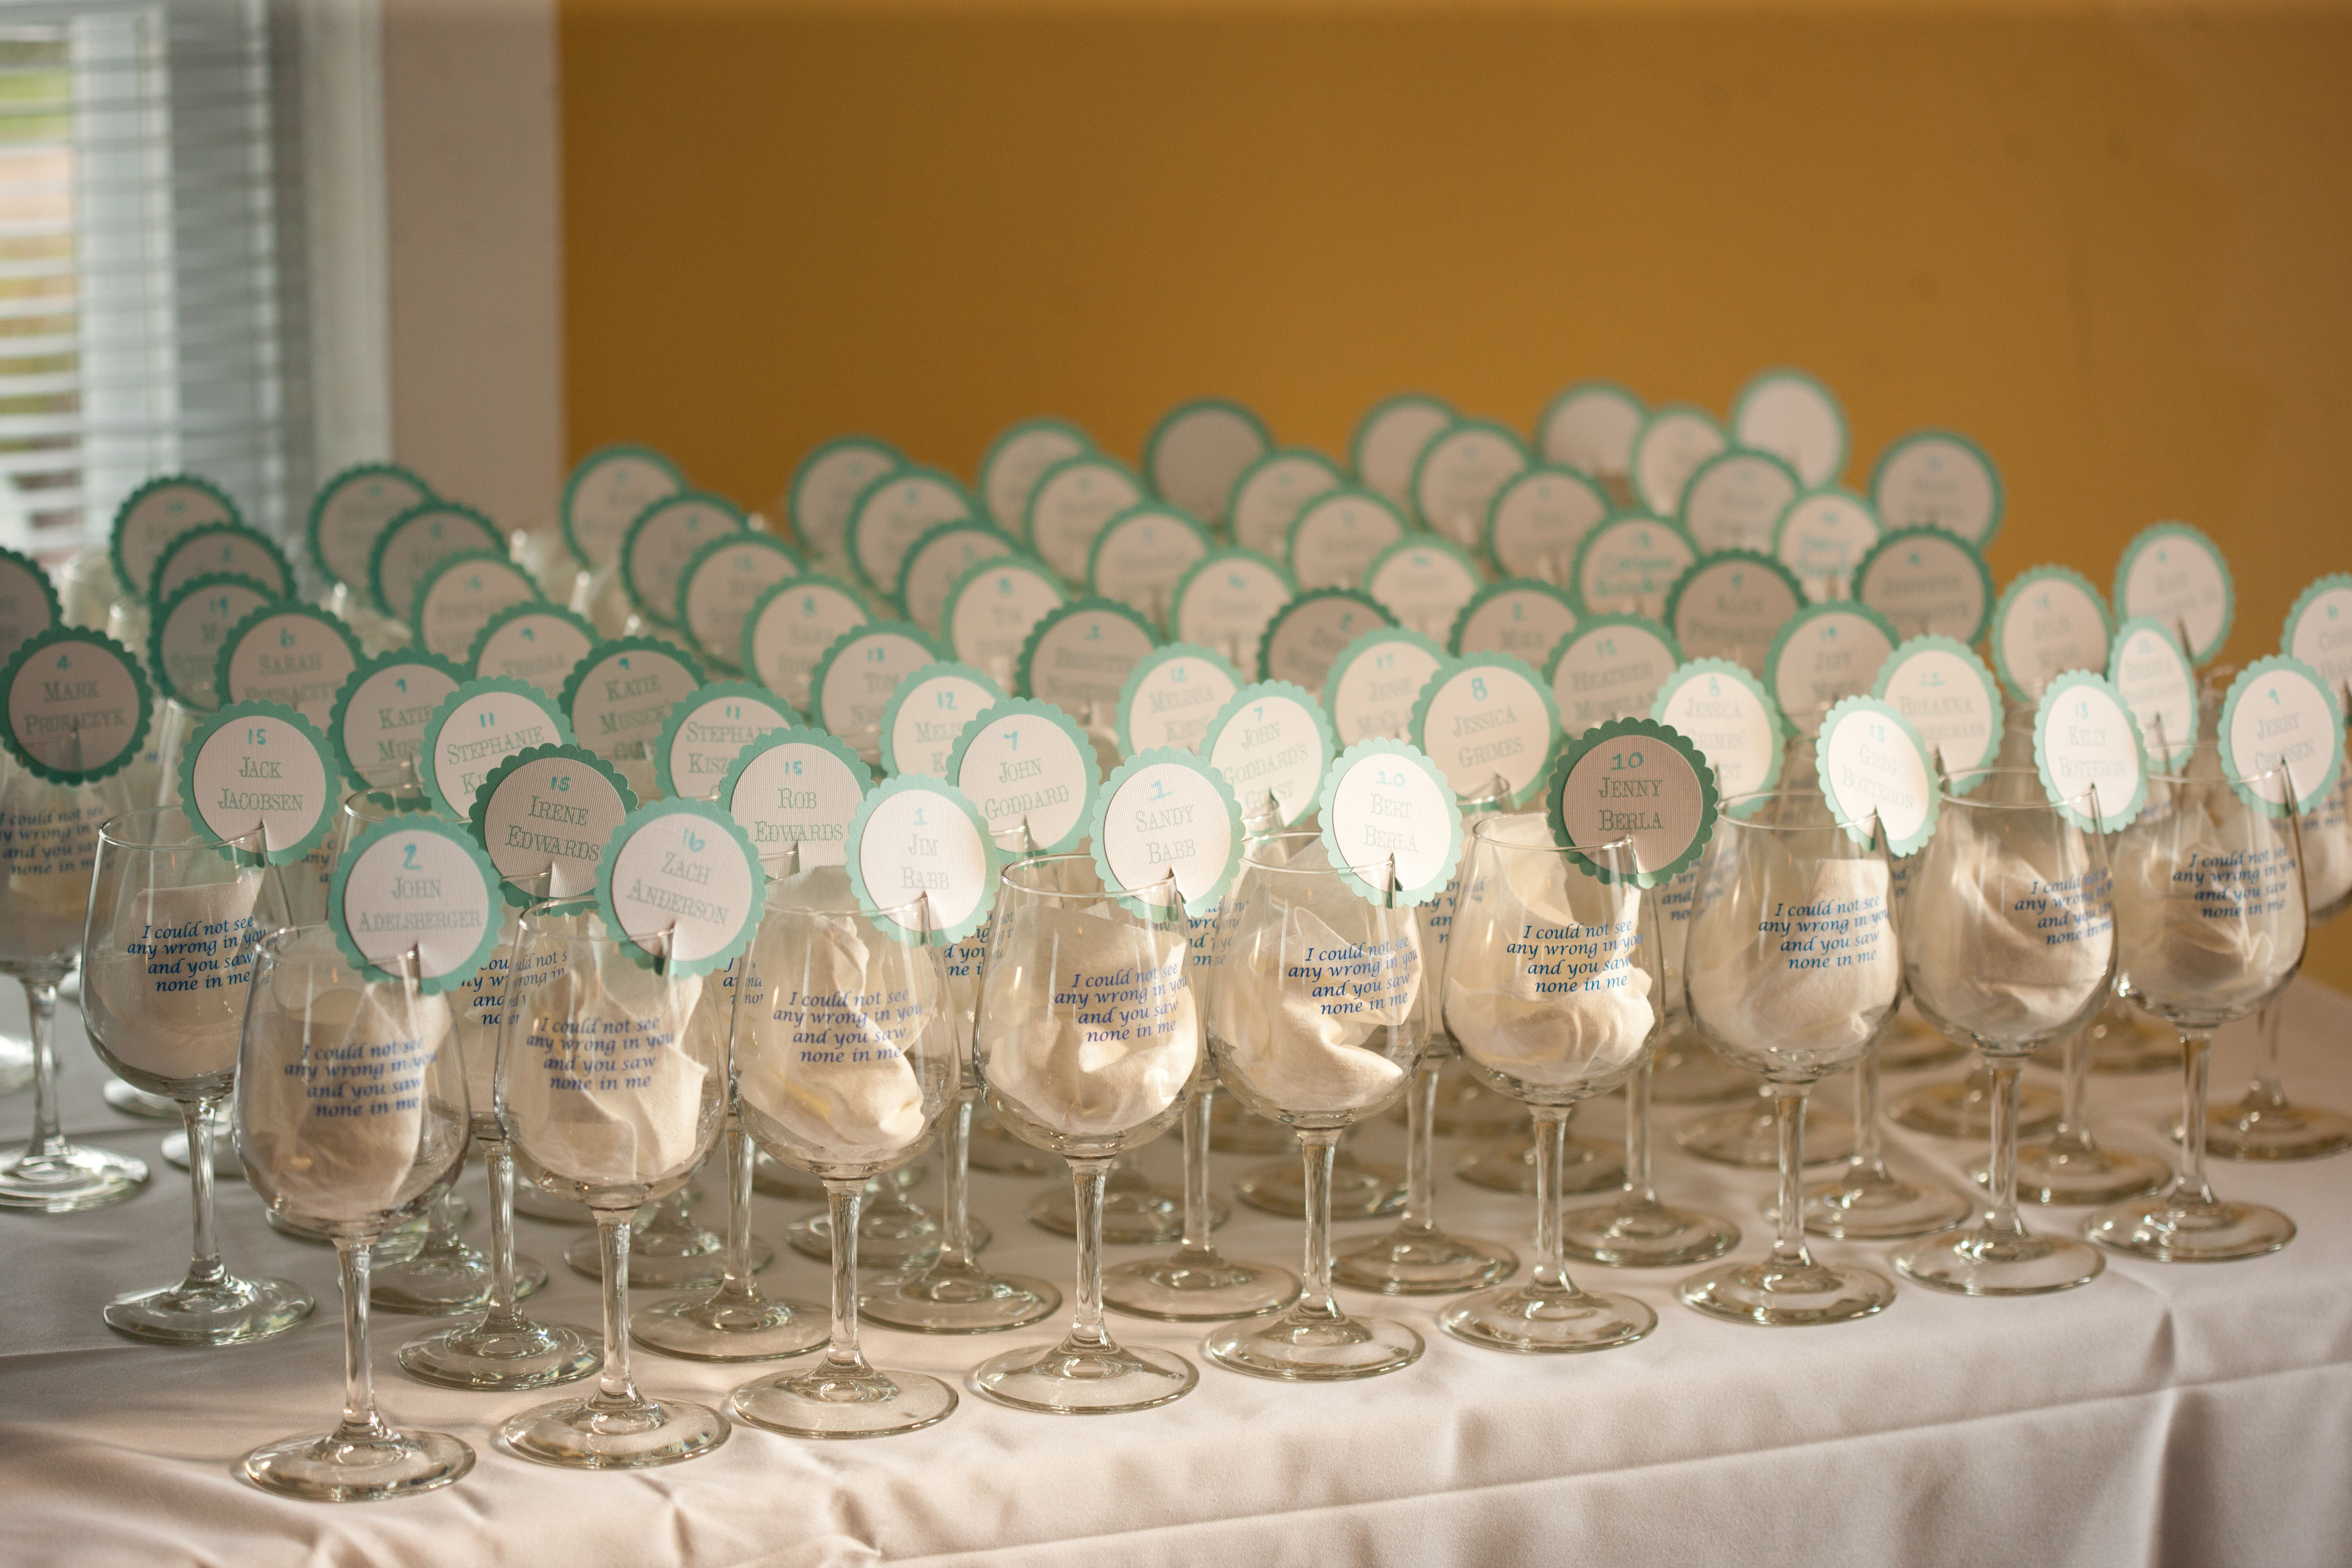 Glass Wedding Gifts: Wedding Favors: Wine Glasses With Lyric Printed On Them